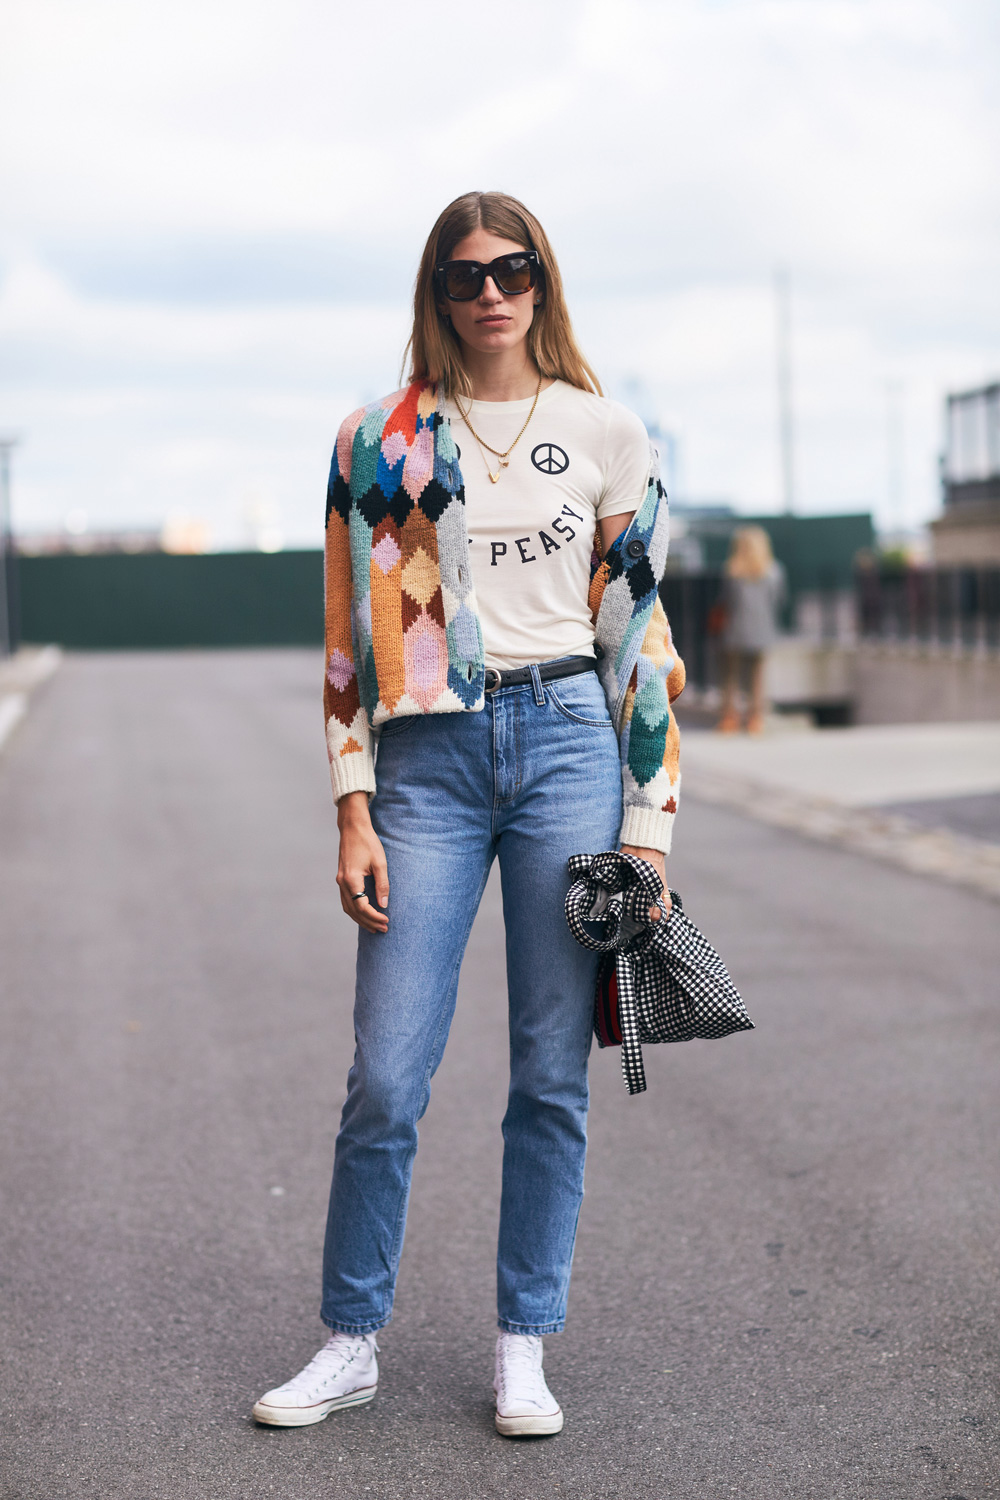 26 Influencer-Approved Ways to Wear Denim Now